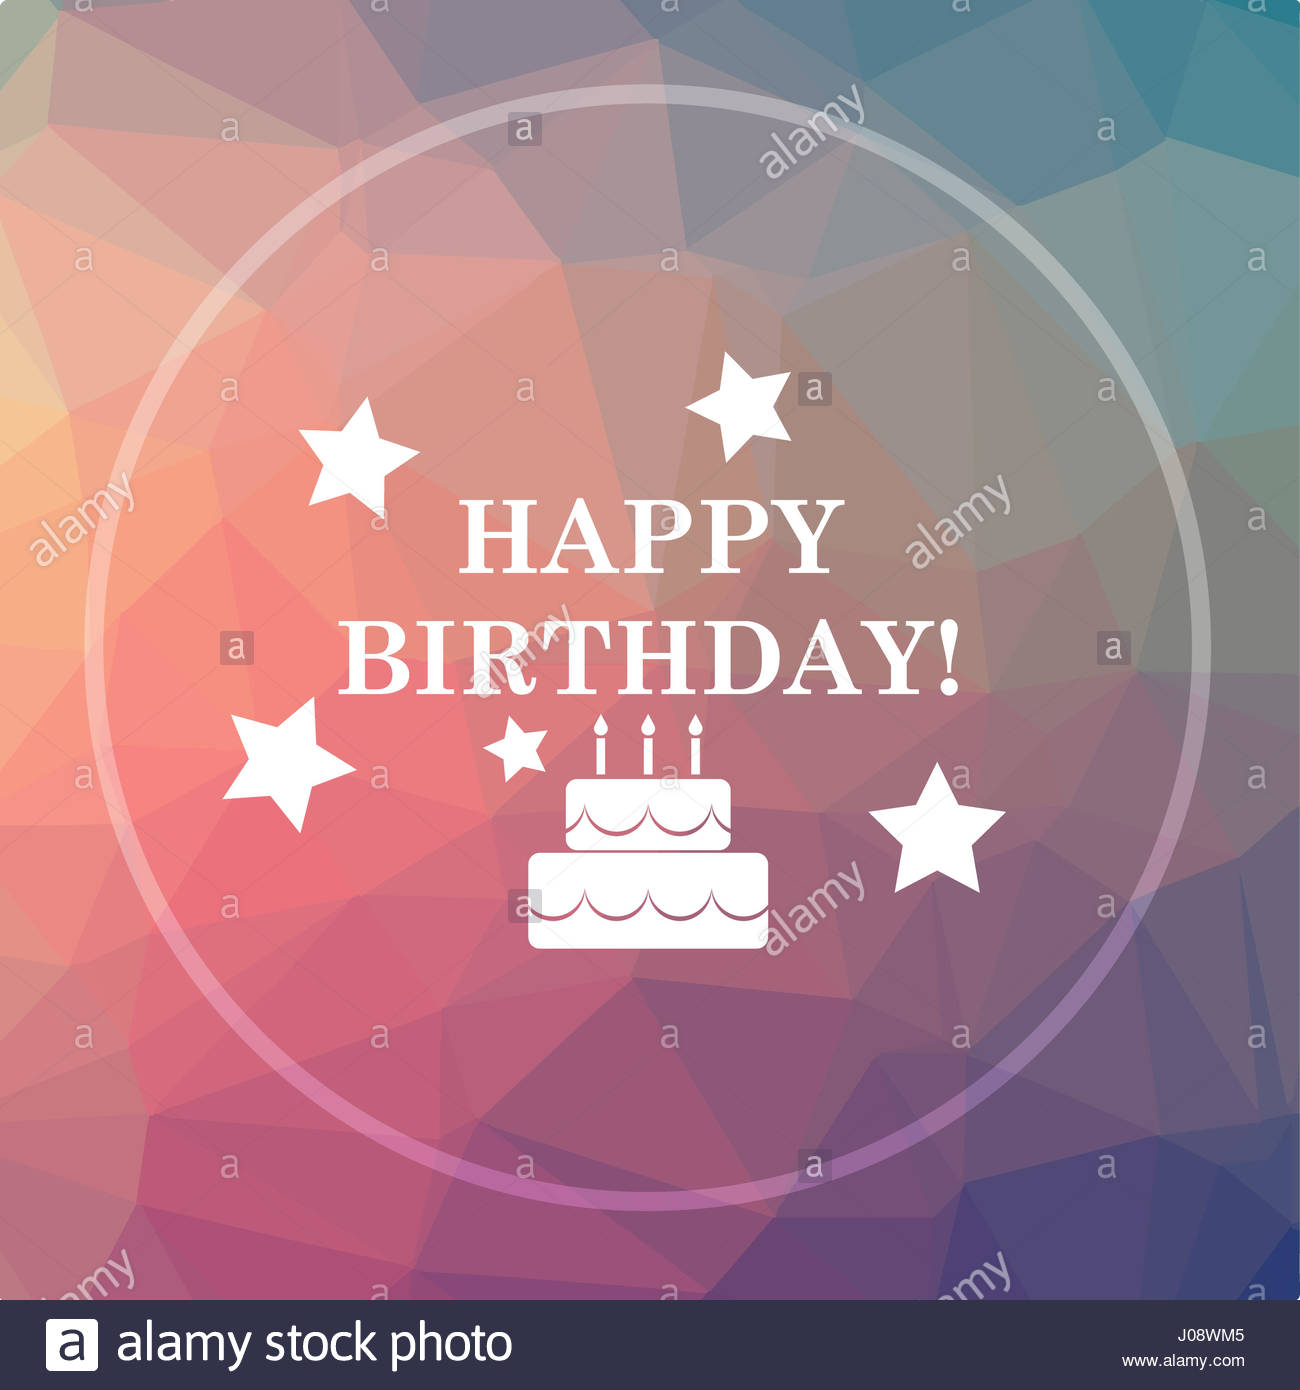 happy birthday website design ; happy-birthday-icon-happy-birthday-website-button-on-low-poly-background-J08WM5